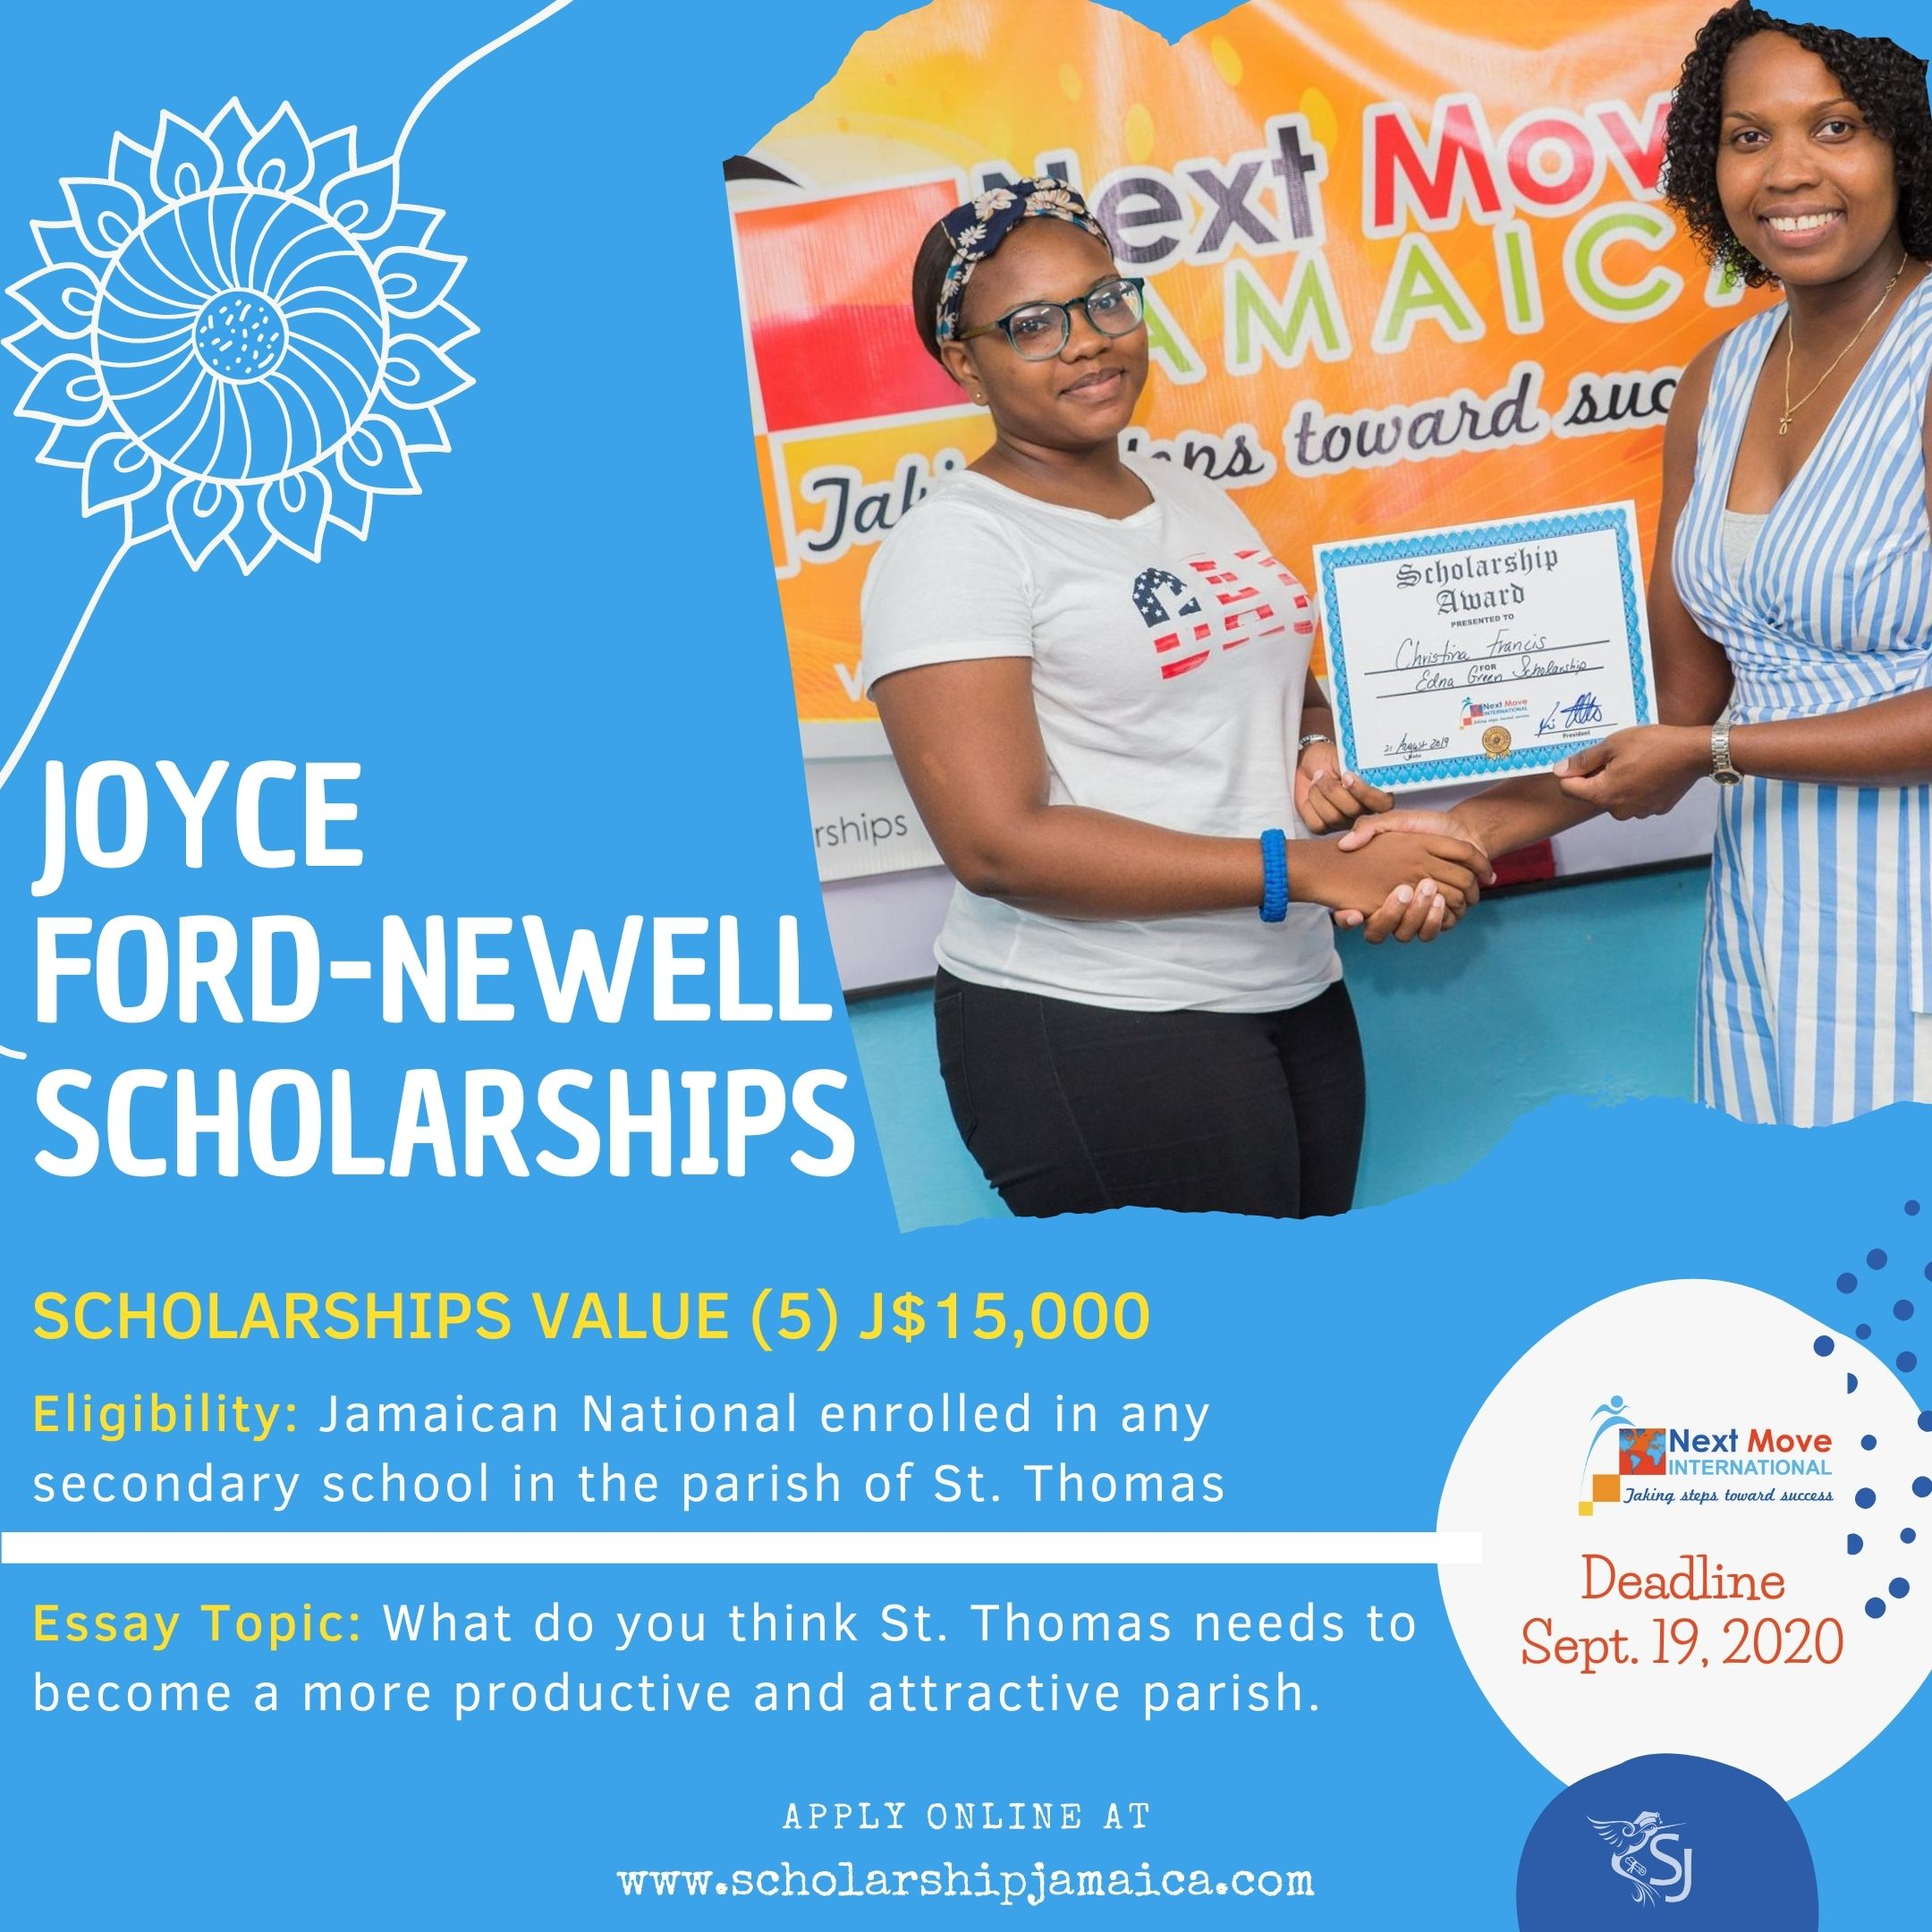 The Joyce Ford-Newell Scholarships for St. Thomas students are open to enrolled students in the parish, especially Seaforth High School students.